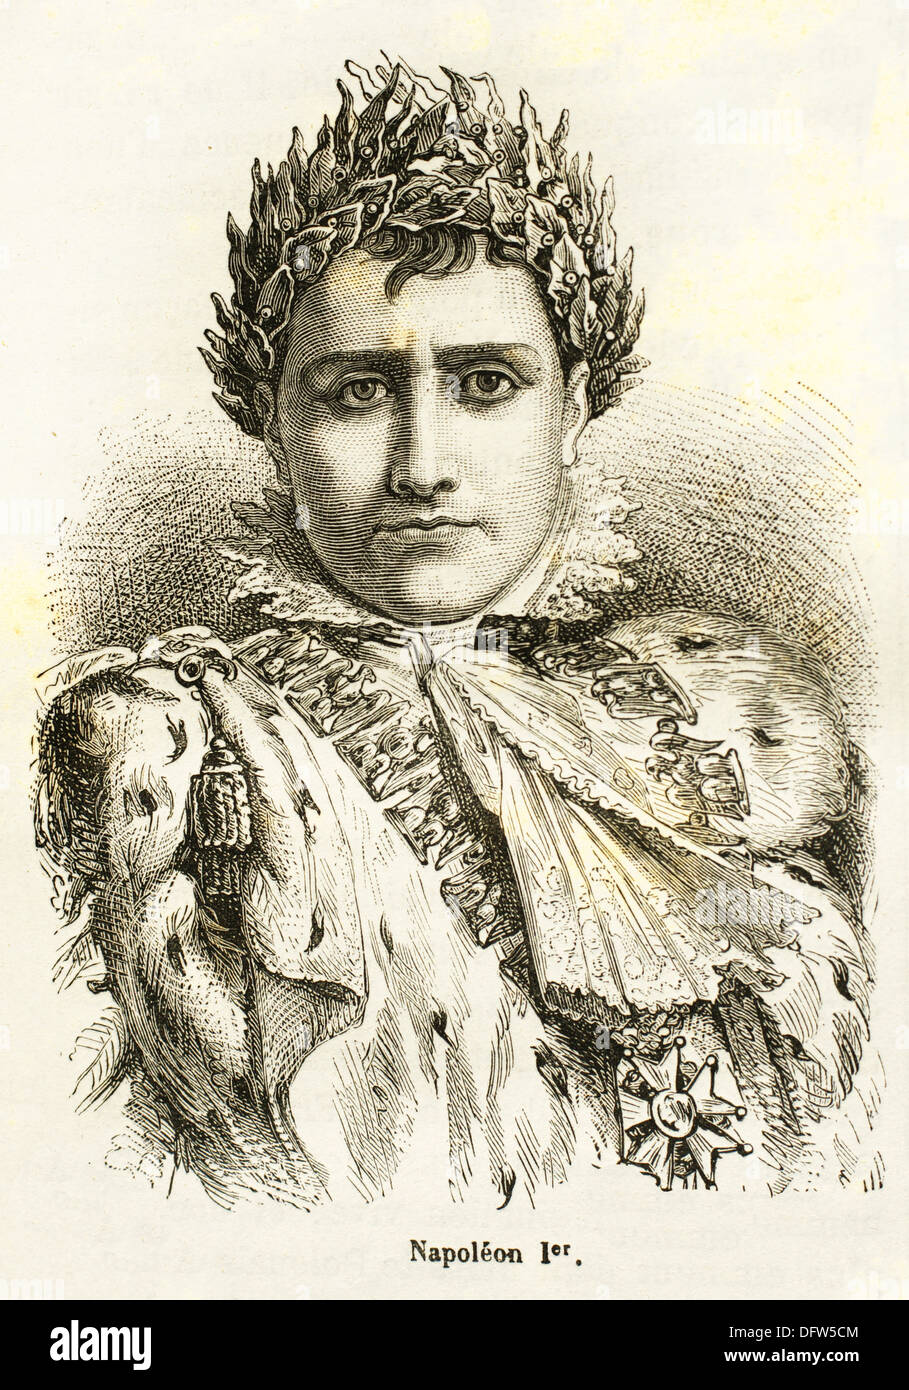 France, History, 19th Century. Napoleon Bonaparte Italian: Napoleone di Buonaparte, 15 August 1769 - 5 May 1821 Stock Photo